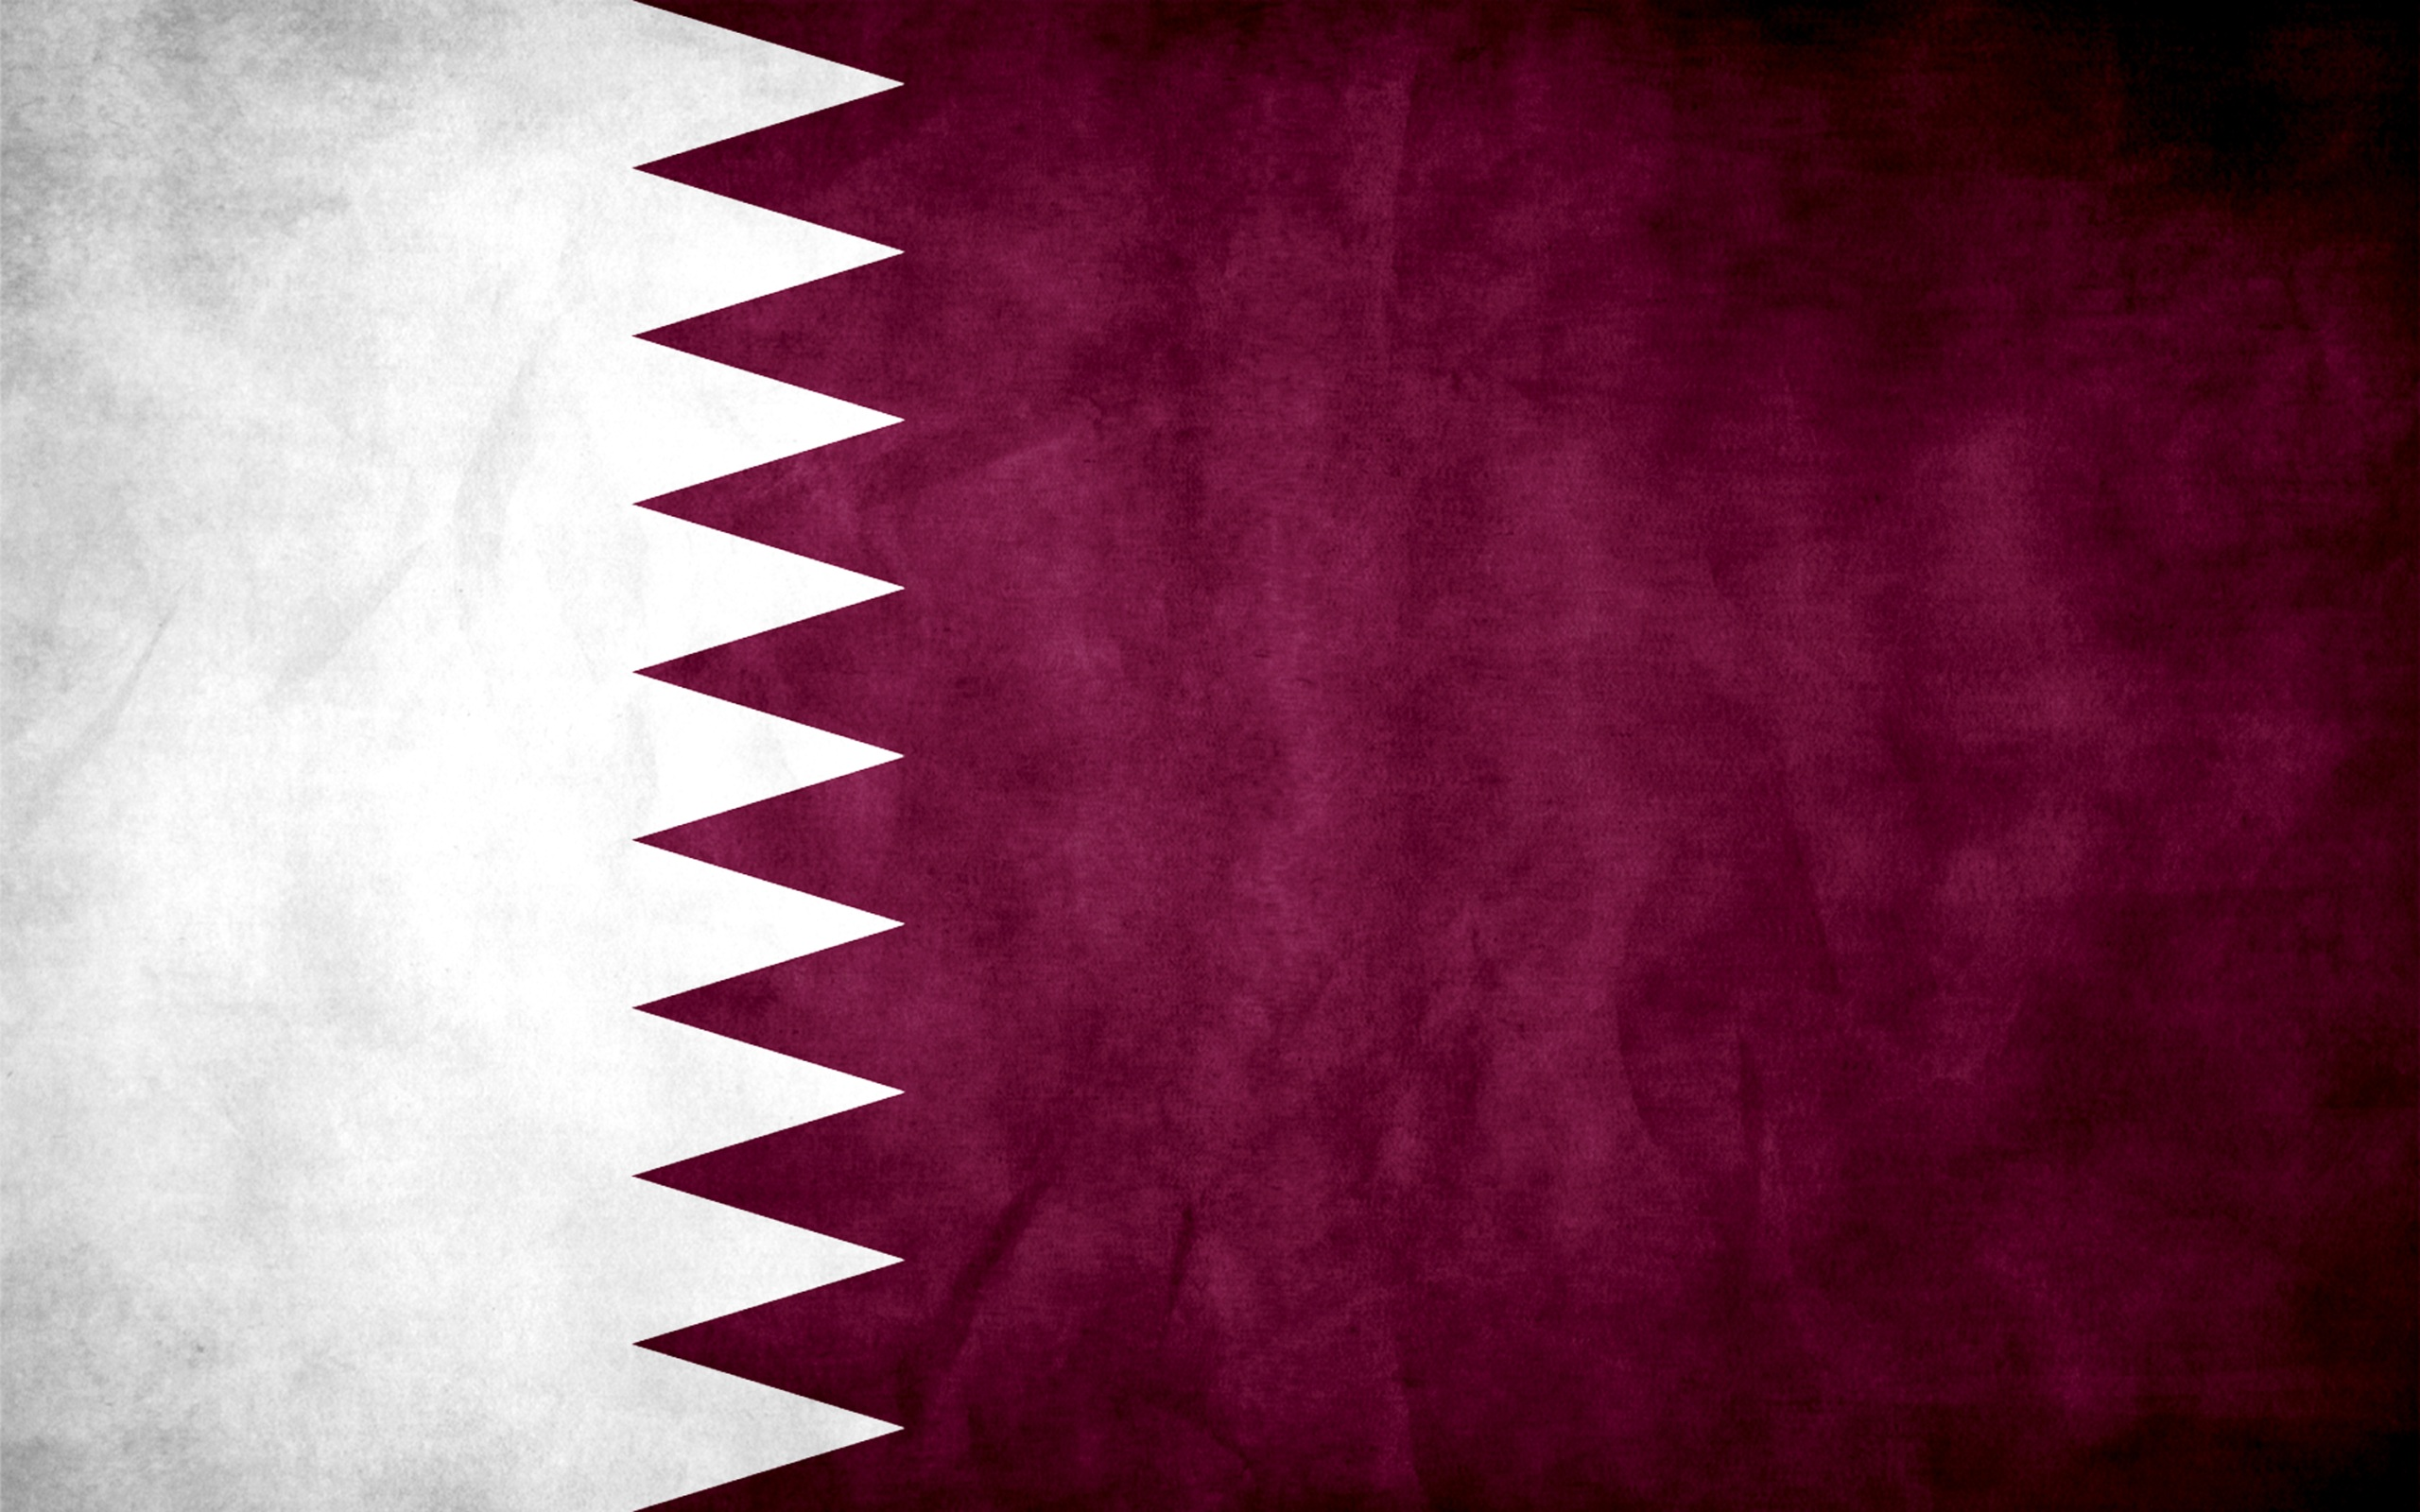 Qatar, HQ Definition Backgrounds, Loise Franks